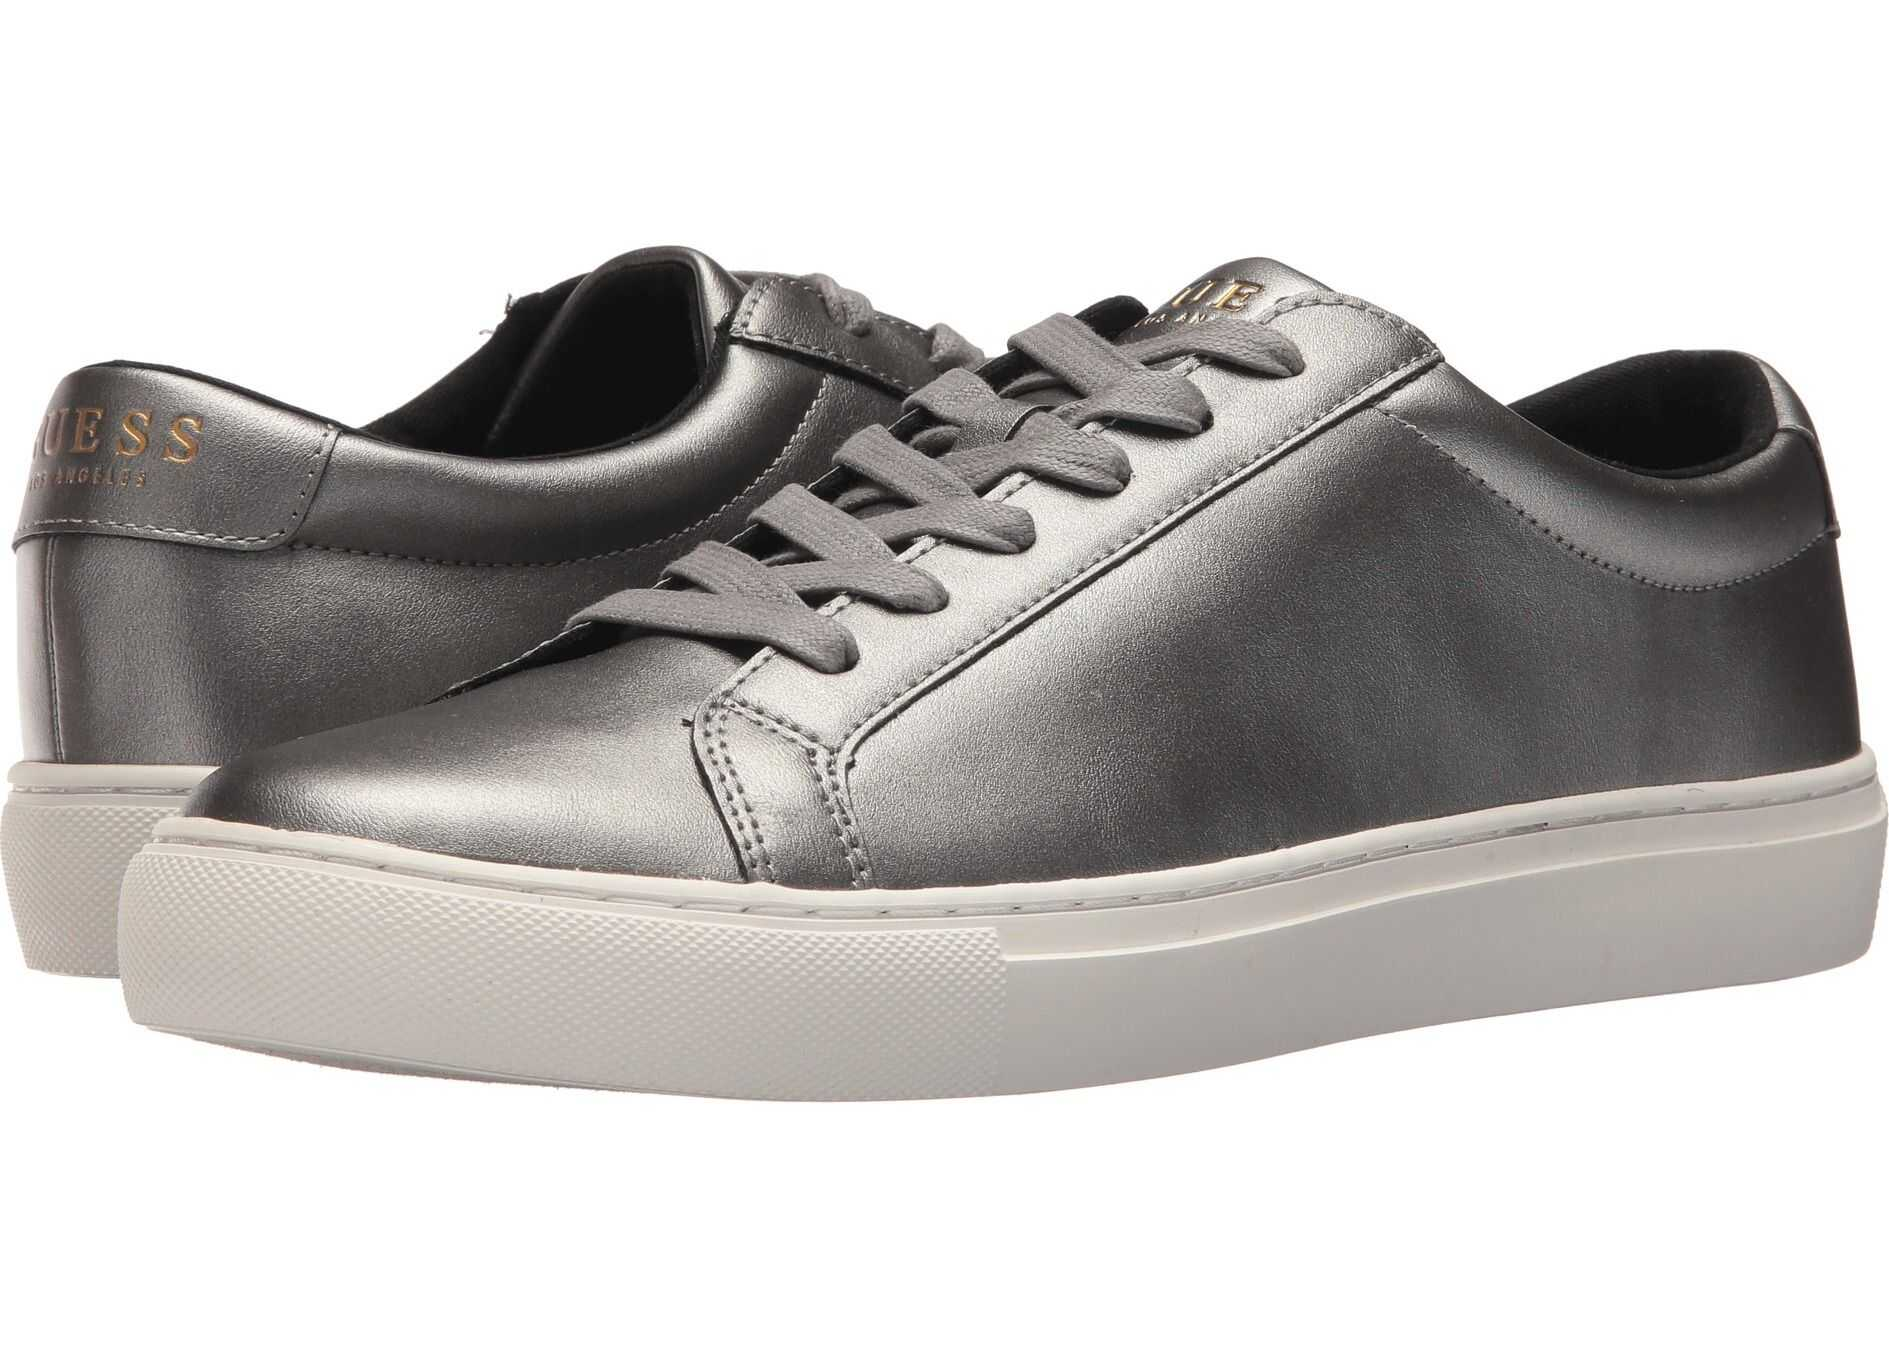 GUESS Barette Pewter Synthetic